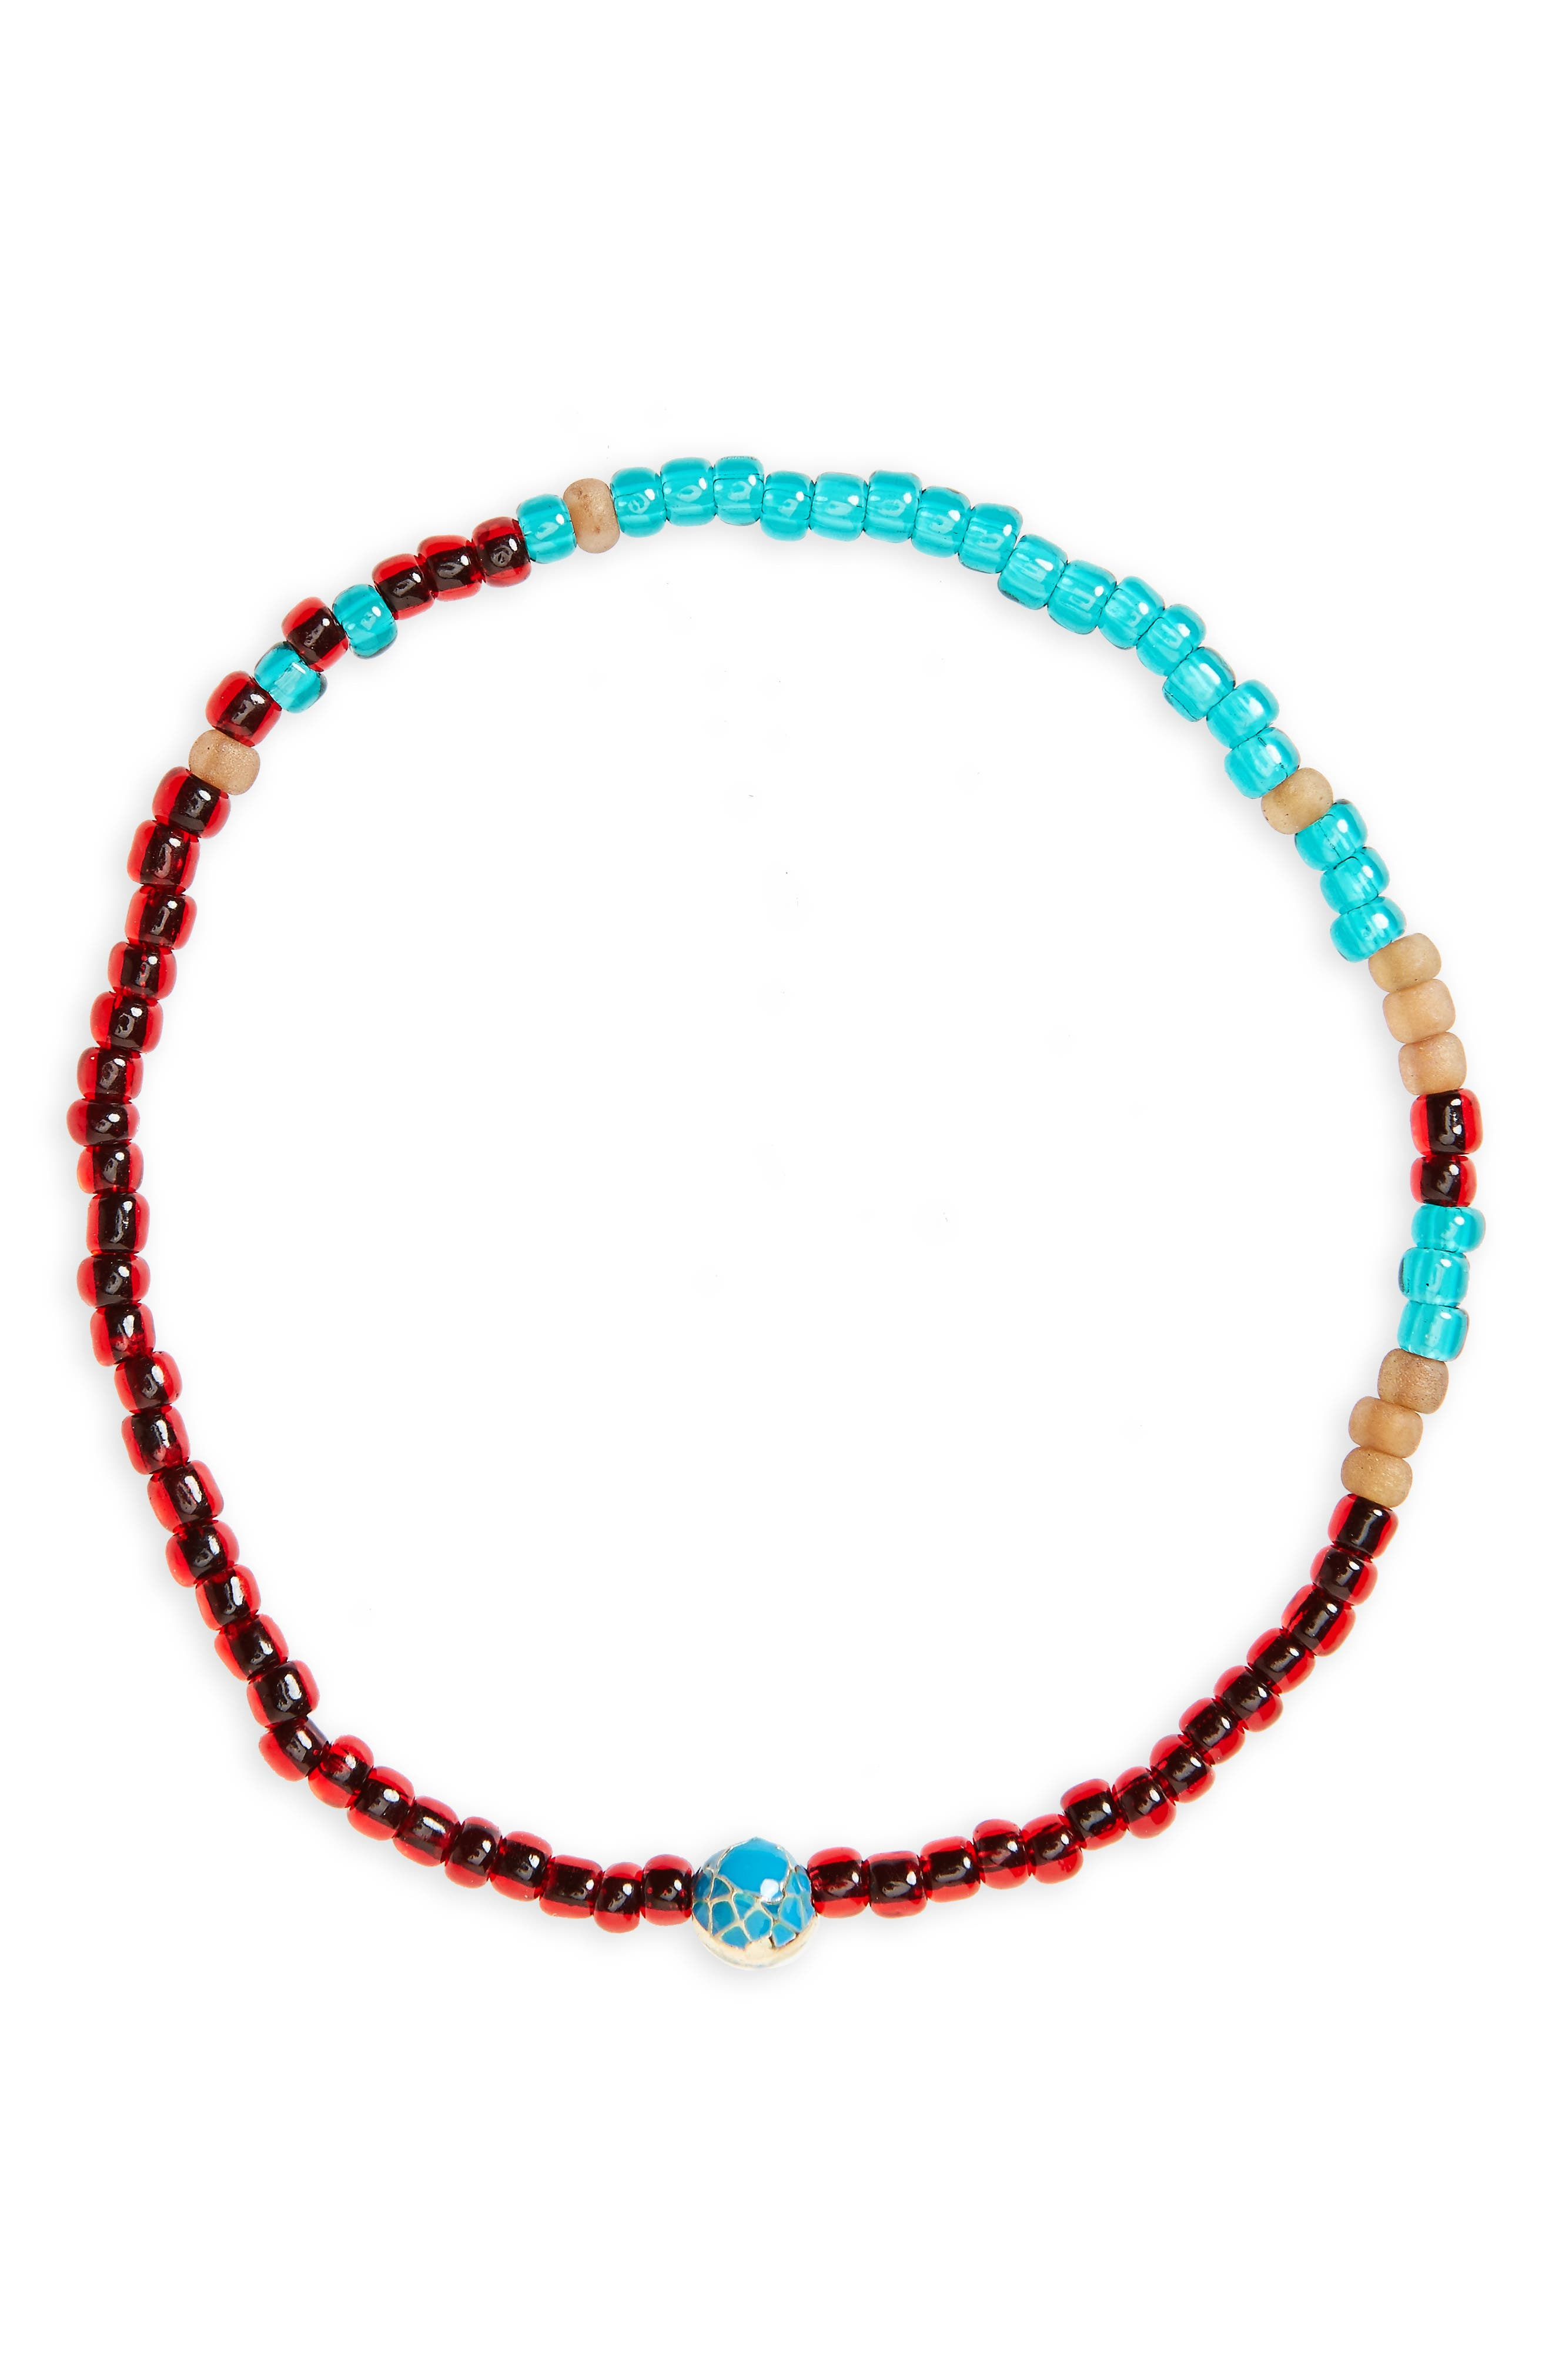 Mini Faceted Mantra Bracelet,                         Main,                         color, Turquoise/ Red Mix